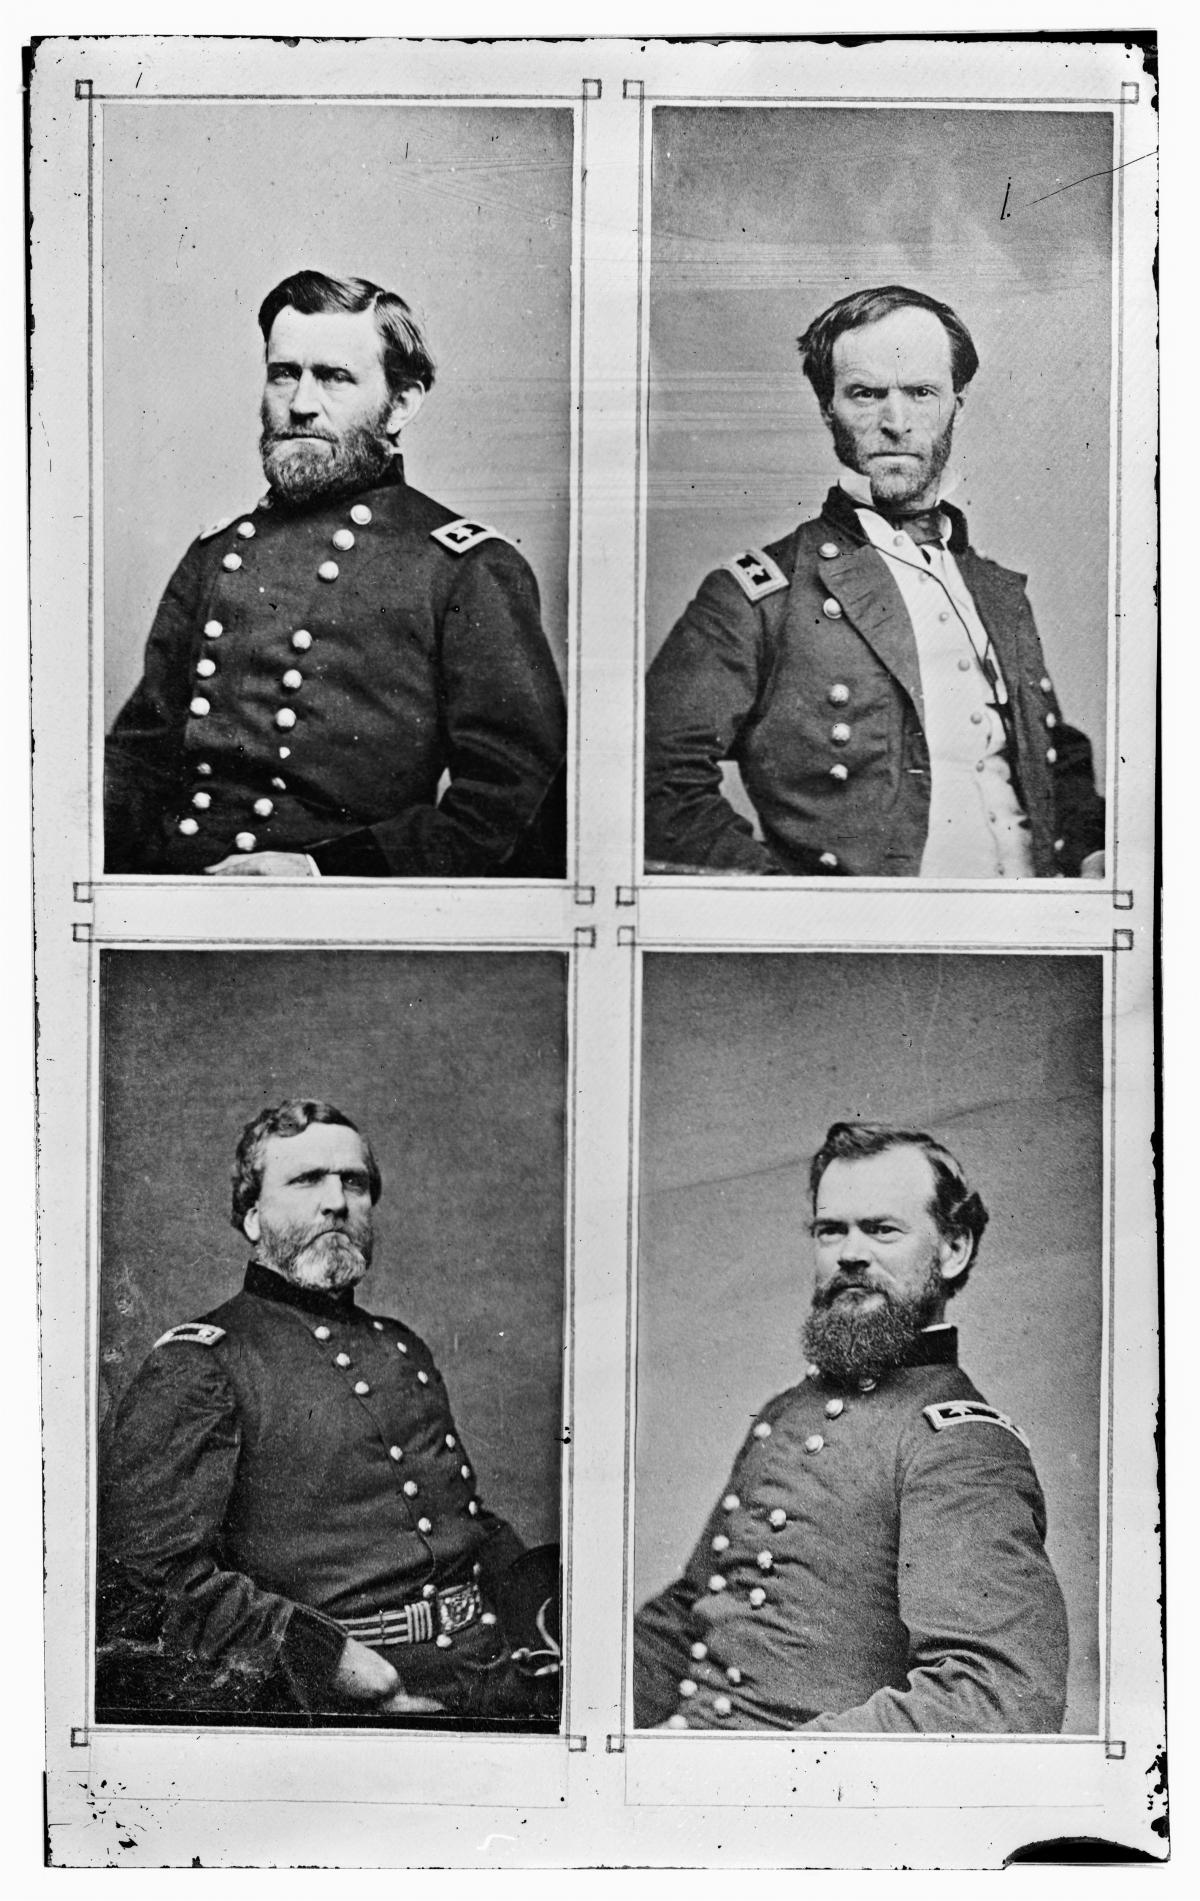 Union generals photographed by Mathew Brady: (clockwise from top left) Ulysses S. Grant, William T. Sherman, James B. McPherson, and George H. Thomas